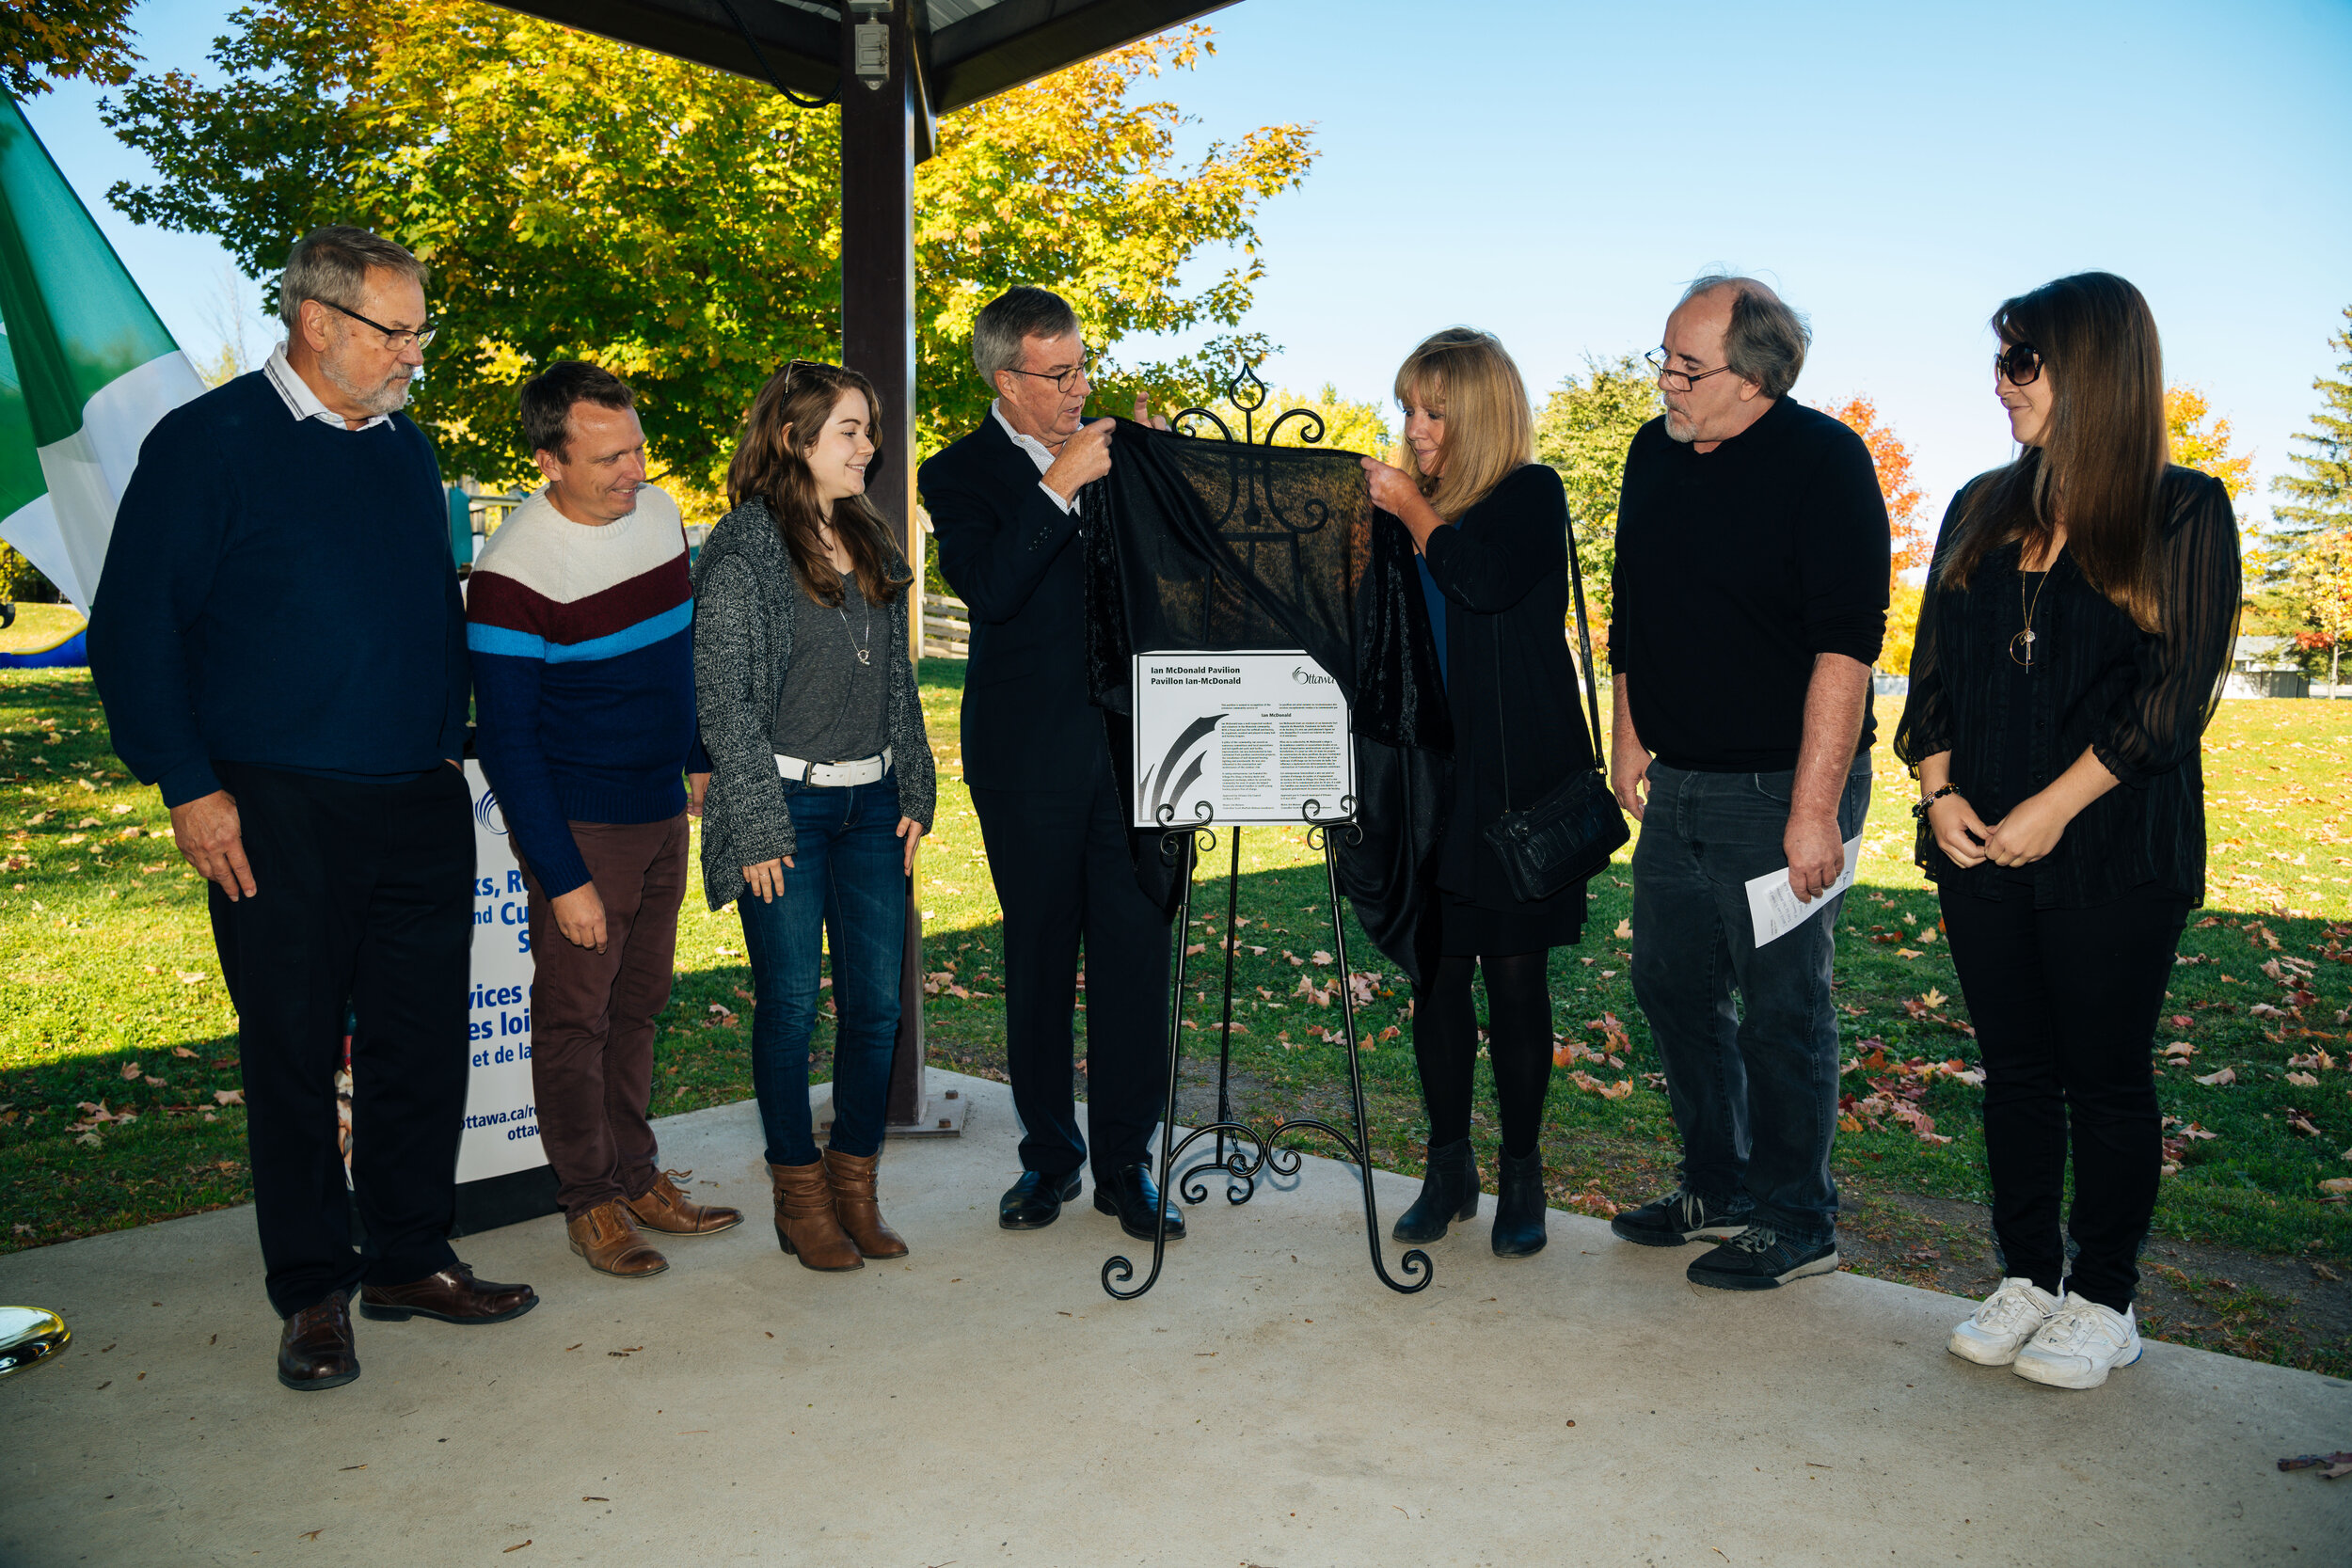 """On Friday, October 11th, there was a commemorative naming ceremony to rename the Pavilion in Centennial Park to the """"Ian McDonald Pavilion."""" Ian was a long-time Manotick resident and known to many in the community.  Thank you to David Wildman for submitting this commemorative naming application to the City!"""